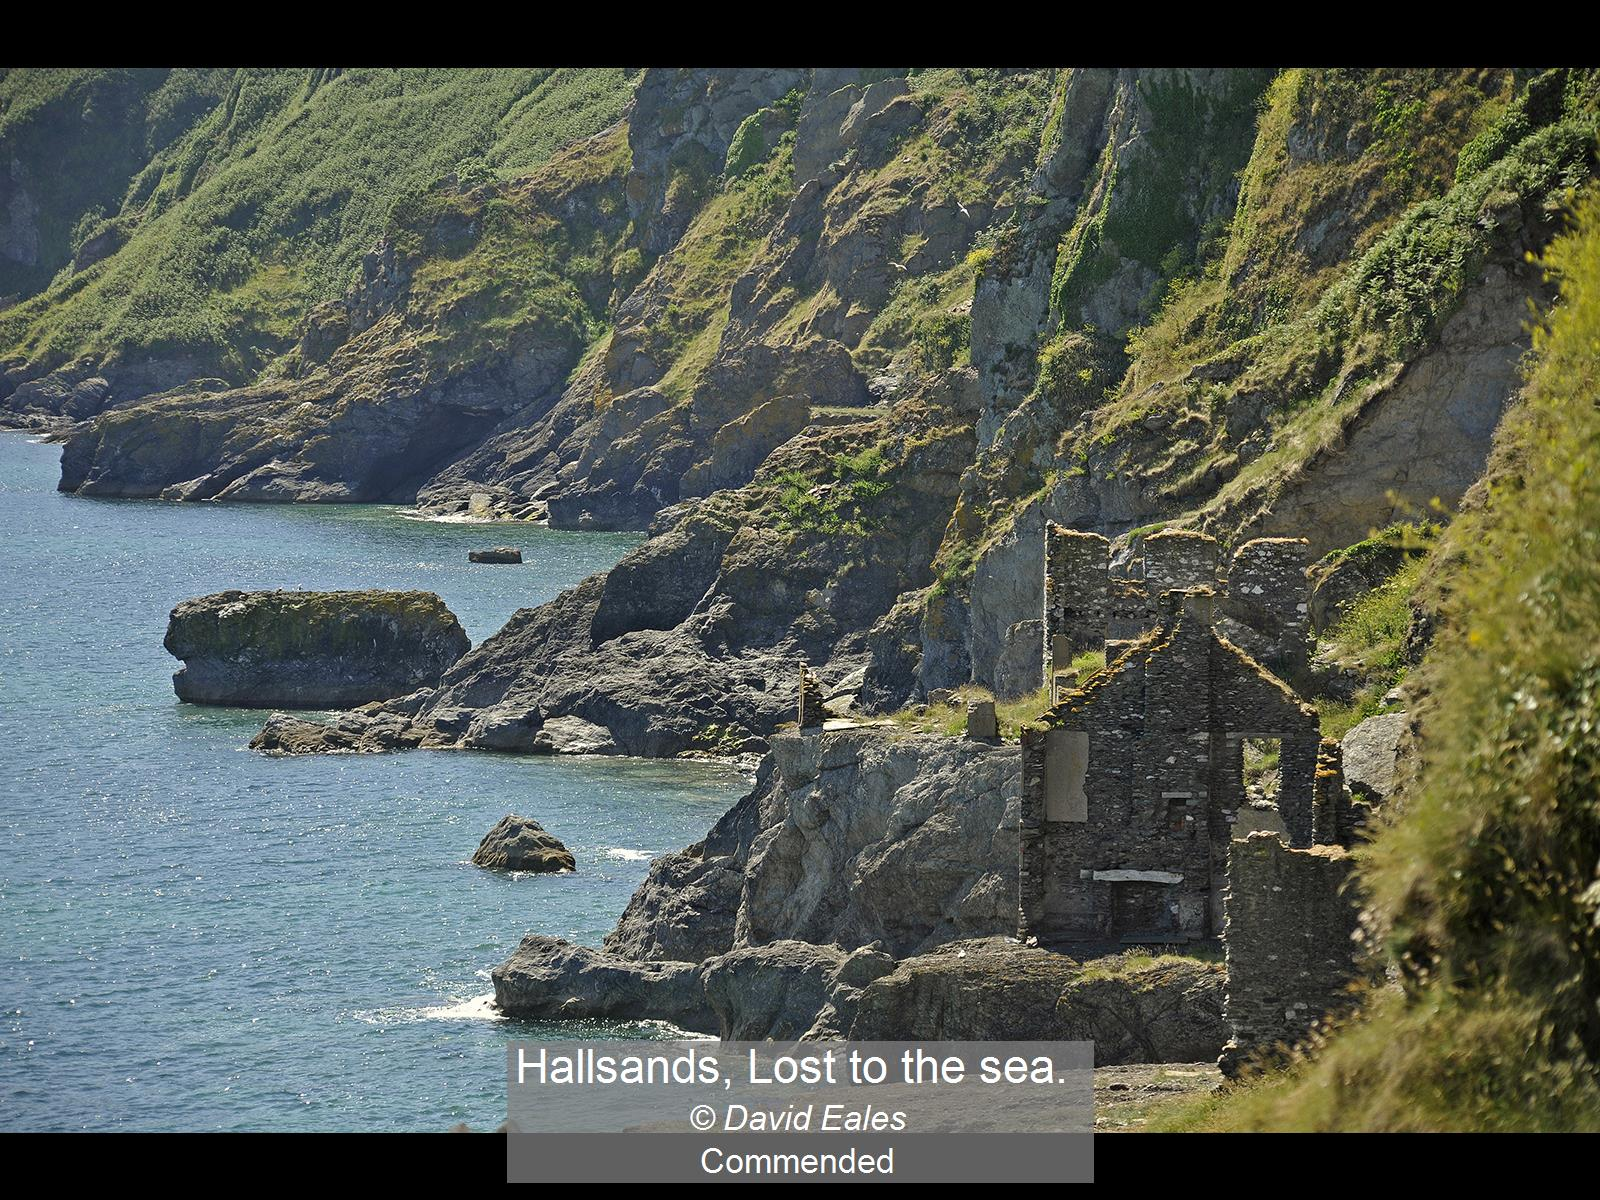 Hallsands, Lost to the sea